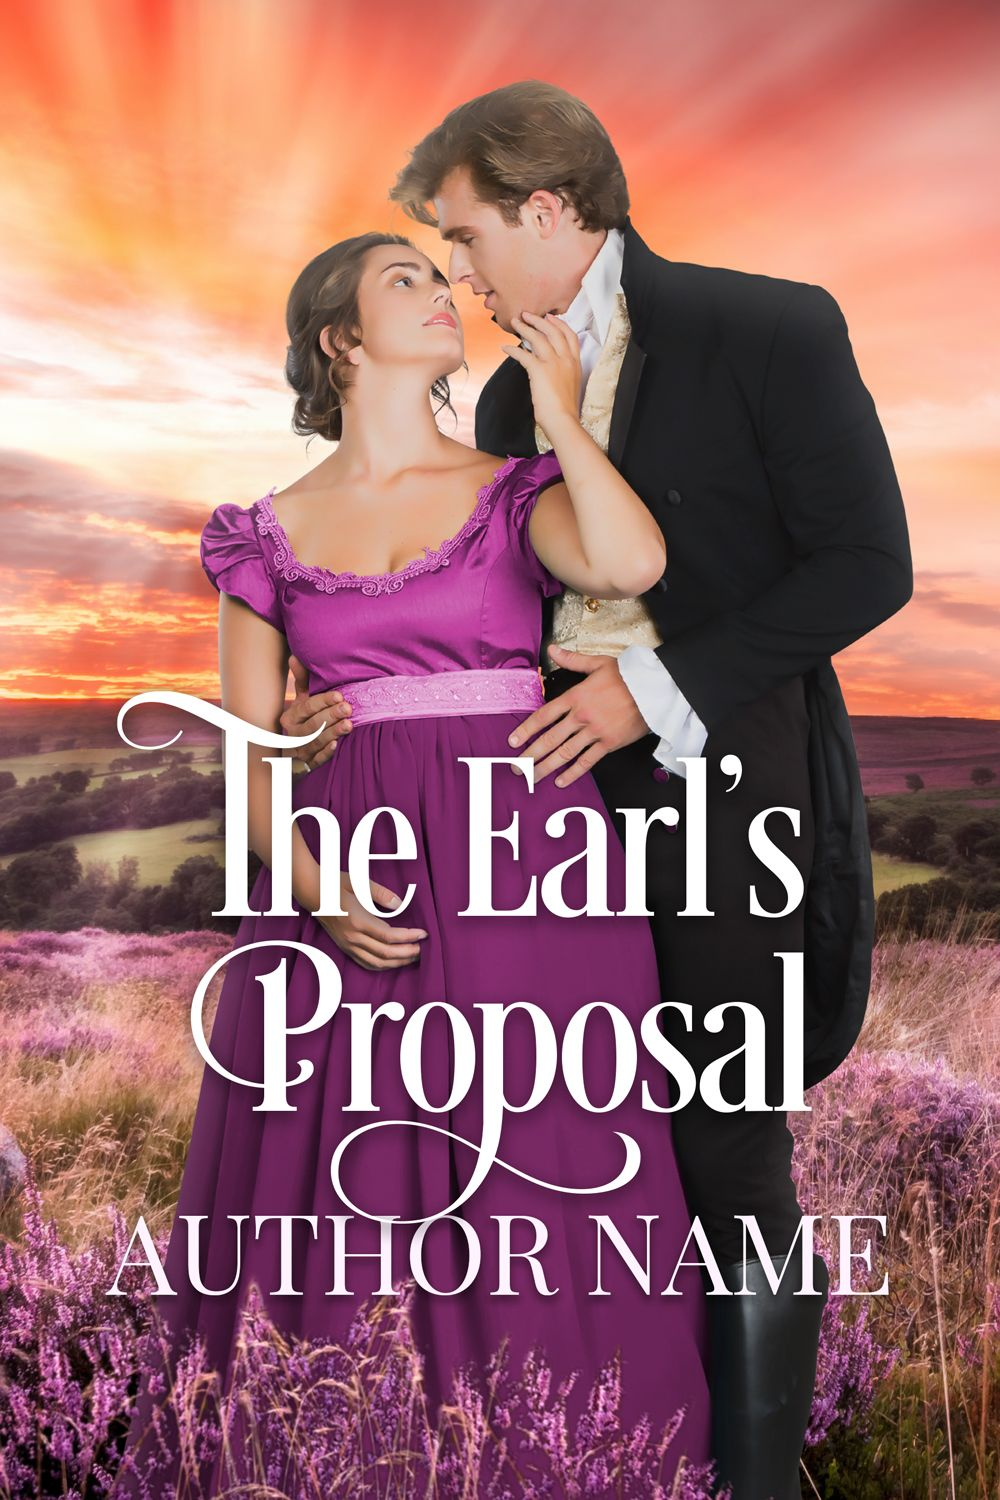 Premade Book Cover Premade Book Covers Book Covers For Sale Historical Romance Book Covers